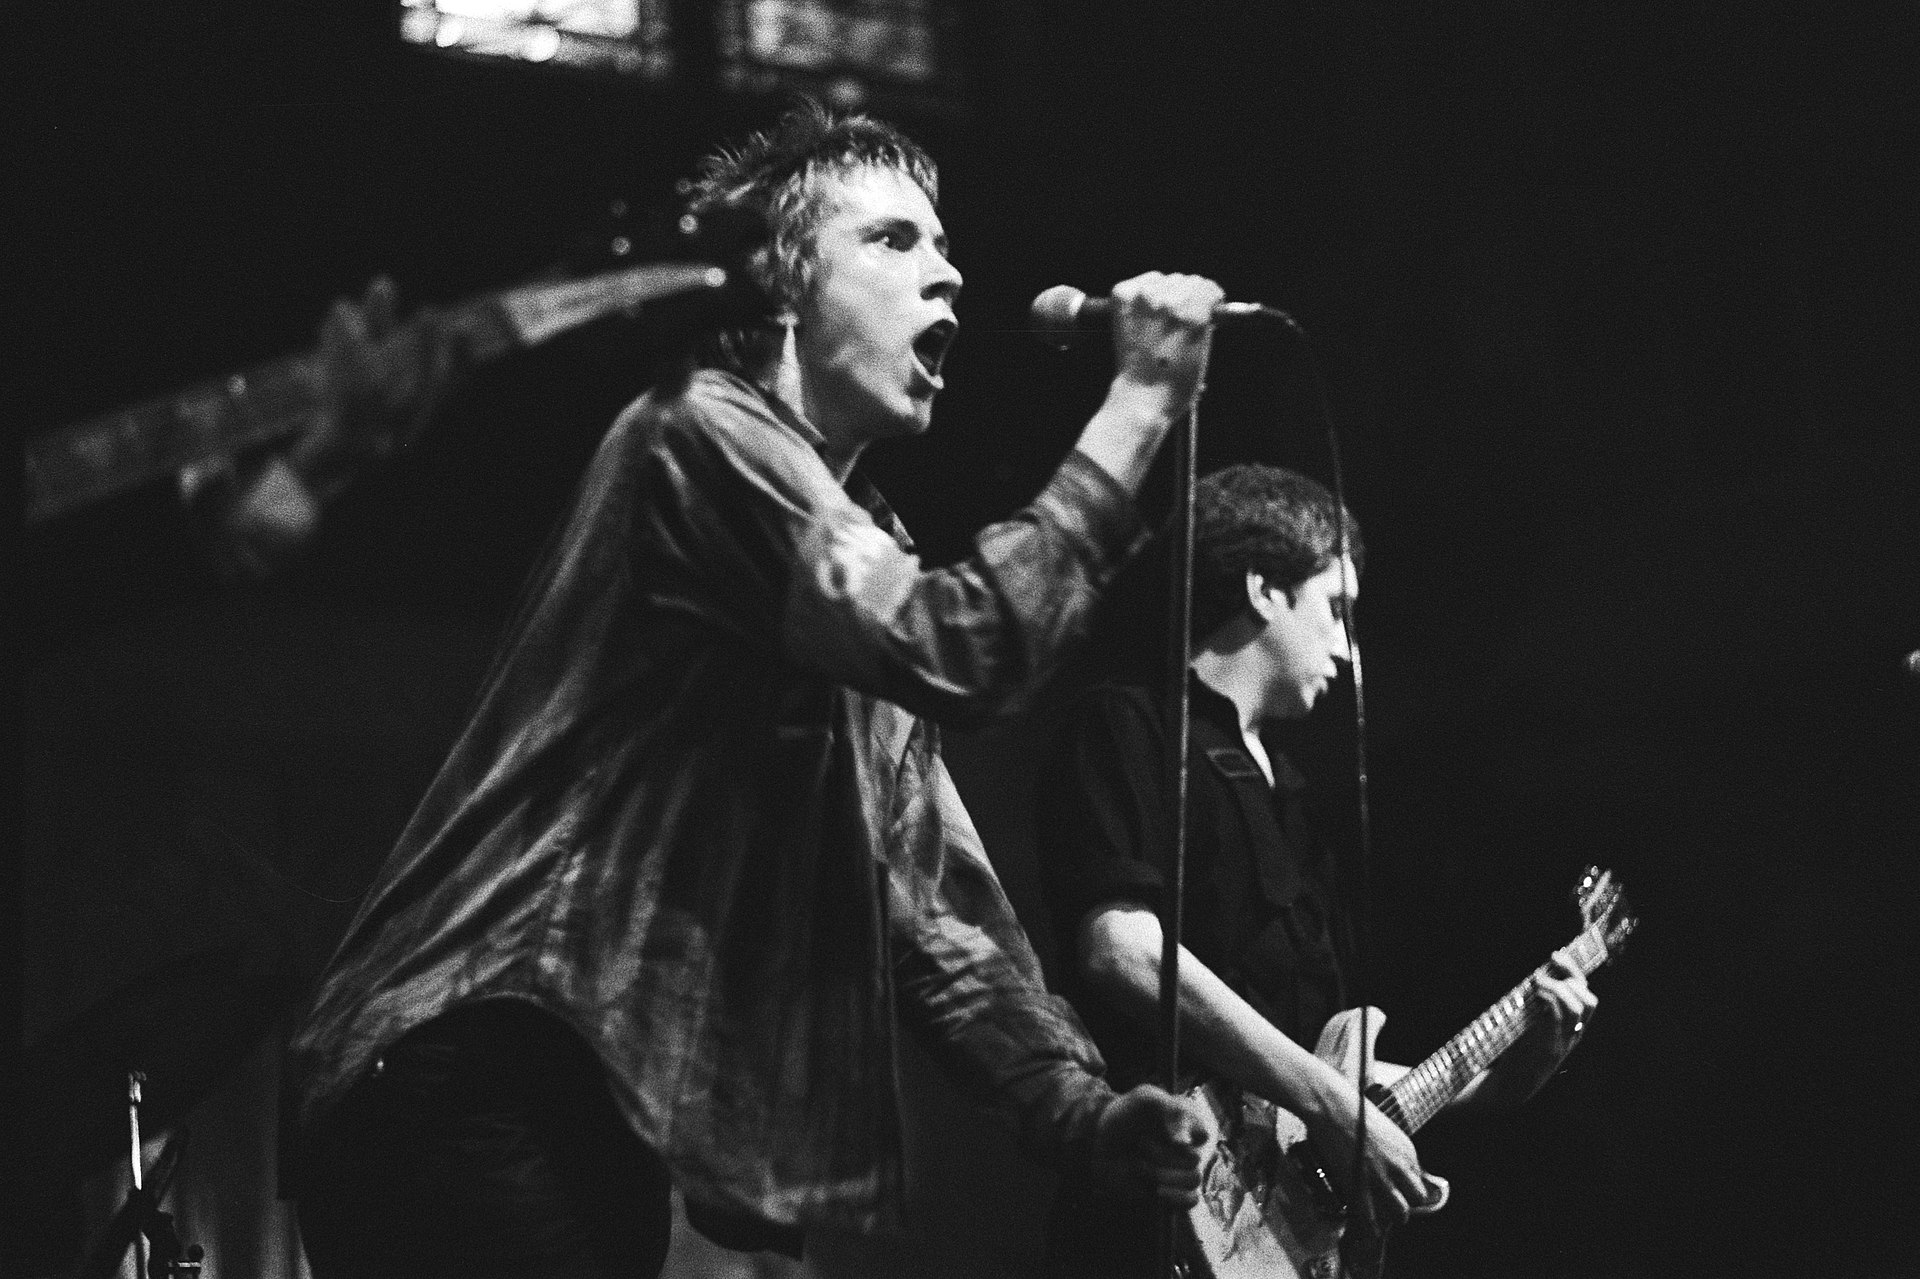 Members of rock band The Sex Pistols onstage in a concert. From left to right, singer Johnny Rotten and electric guitarist Steve Jones.